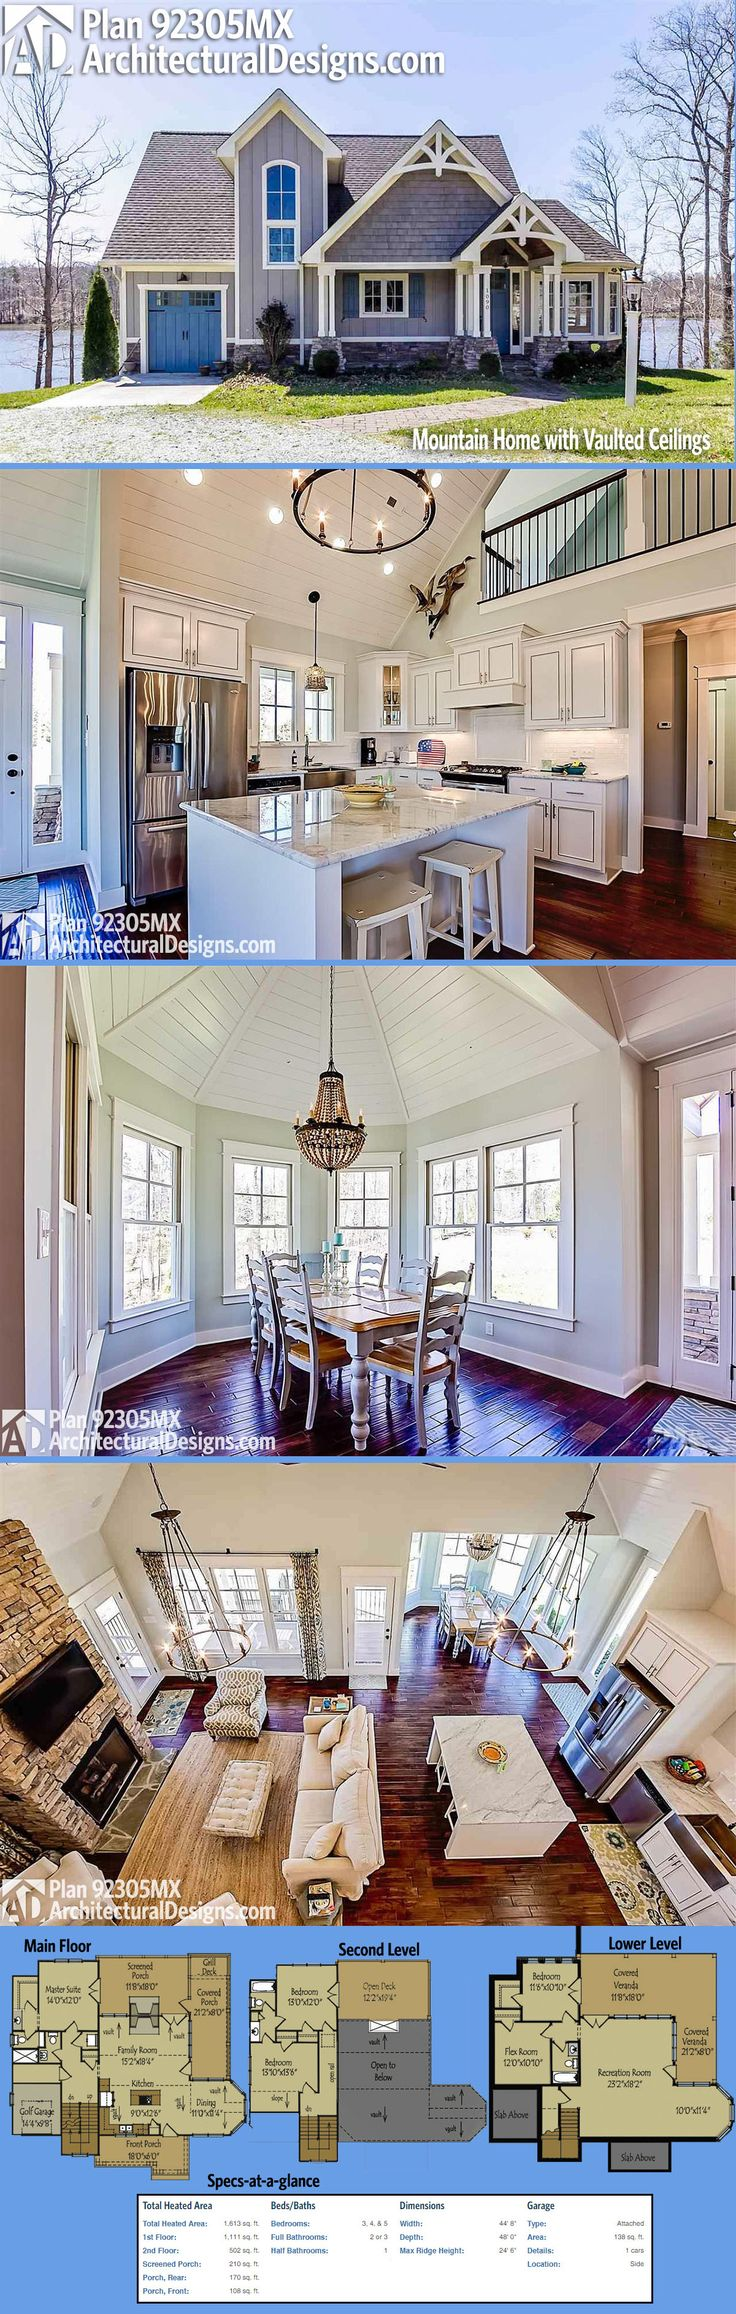 Craftsman style dining room - Check Out This Classy Build Of Architectural Designs Exclusive House Plan 92305mx It Has Beautiful